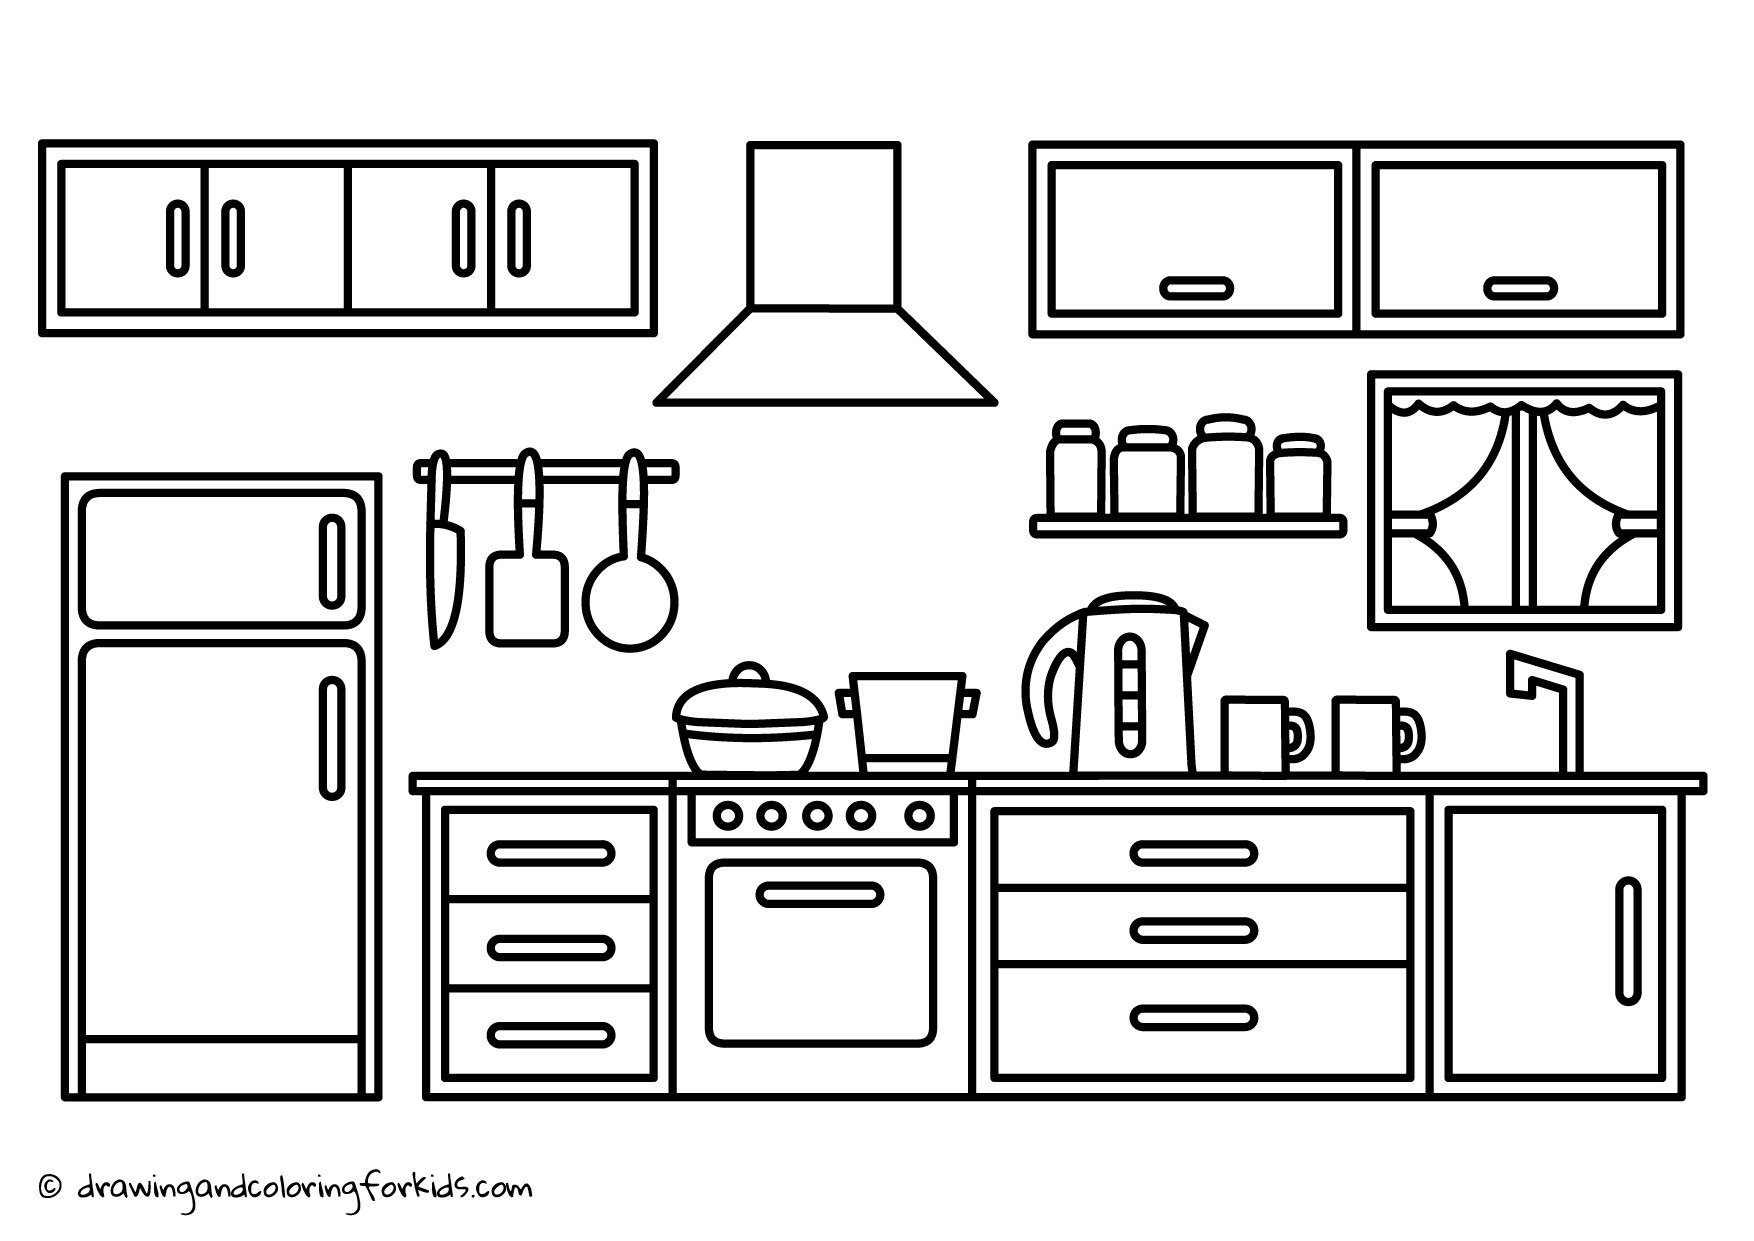 Coloring Page Kitchen Drawing Kitchen Cabinets Kitchen Coloring Page Coloring Pages Frog Coloring Pages Doodle Art For Beginners